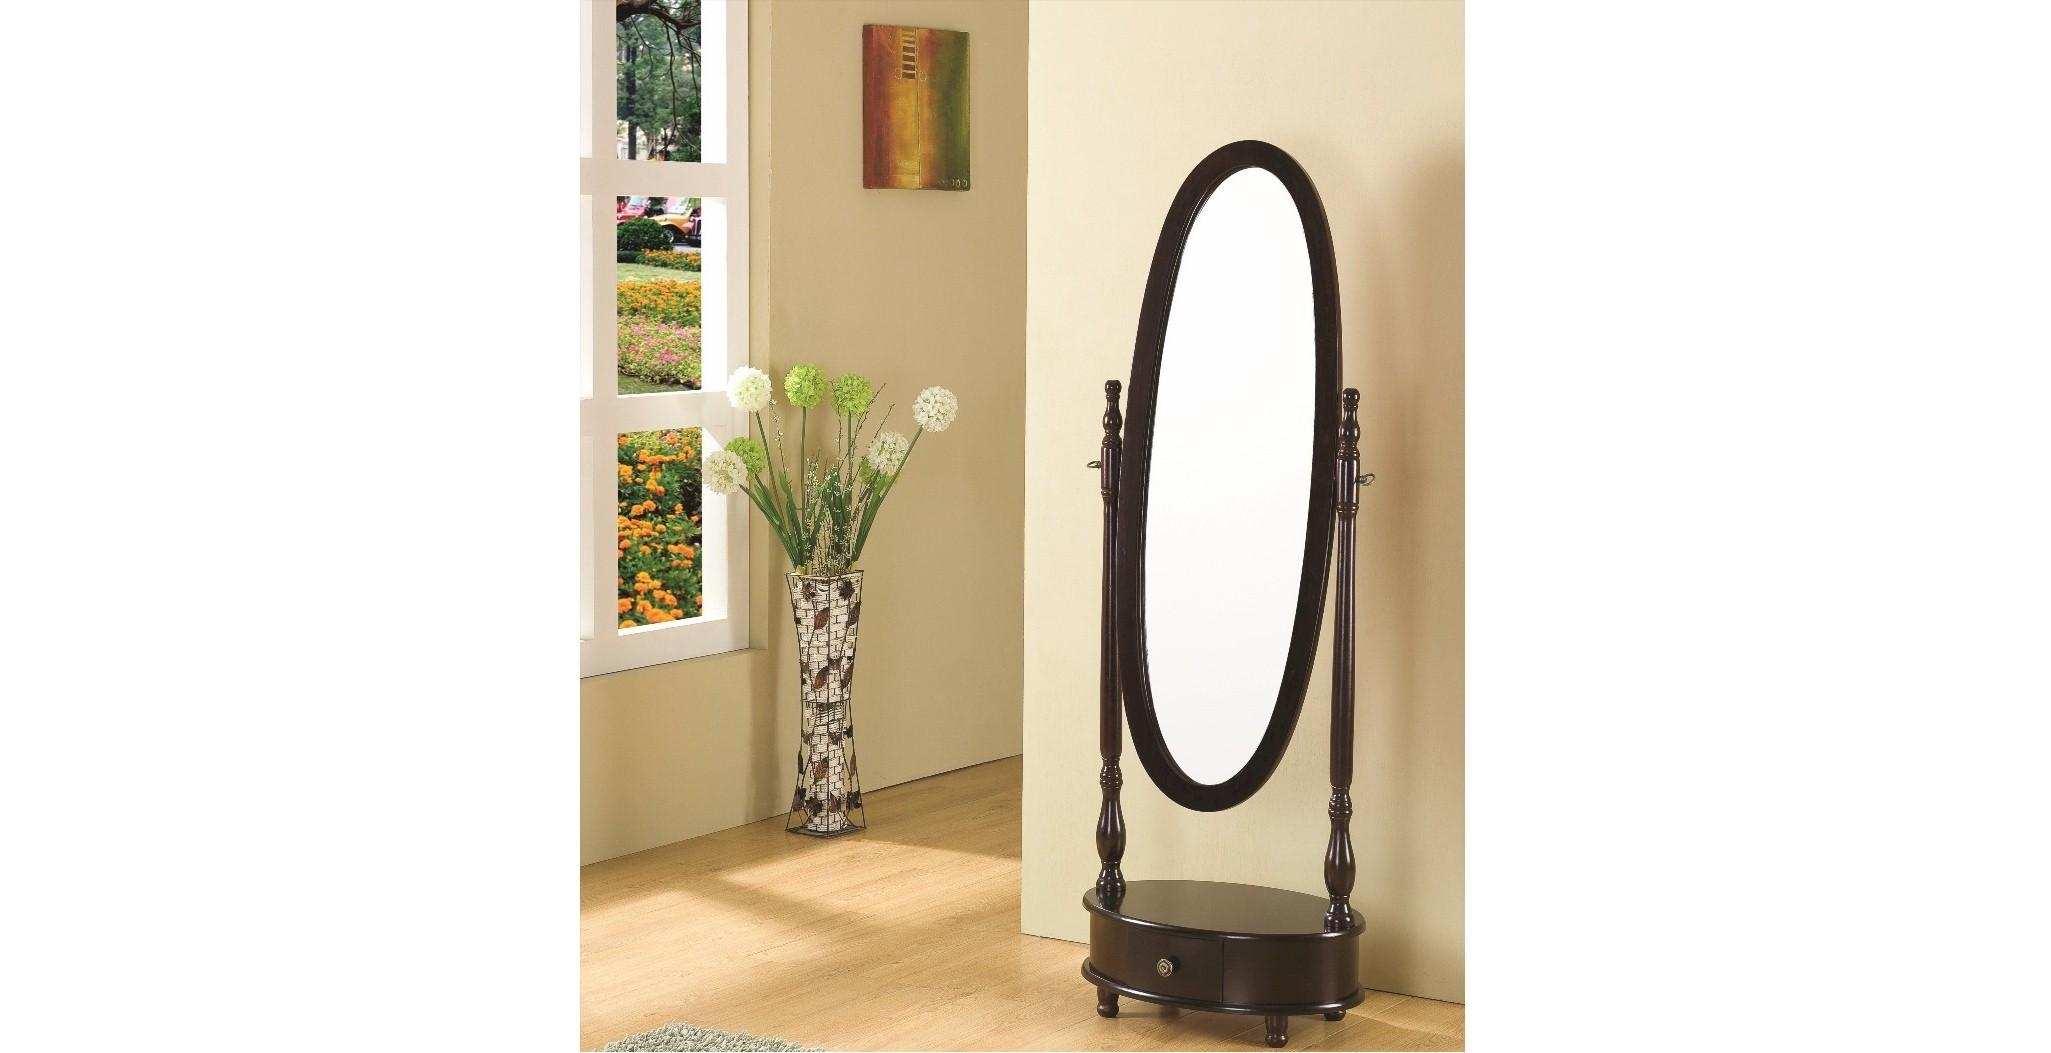 Buildmantra: Online At Best Price In India , Furnish Shop Within Dressing Mirror Price (Image 1 of 20)